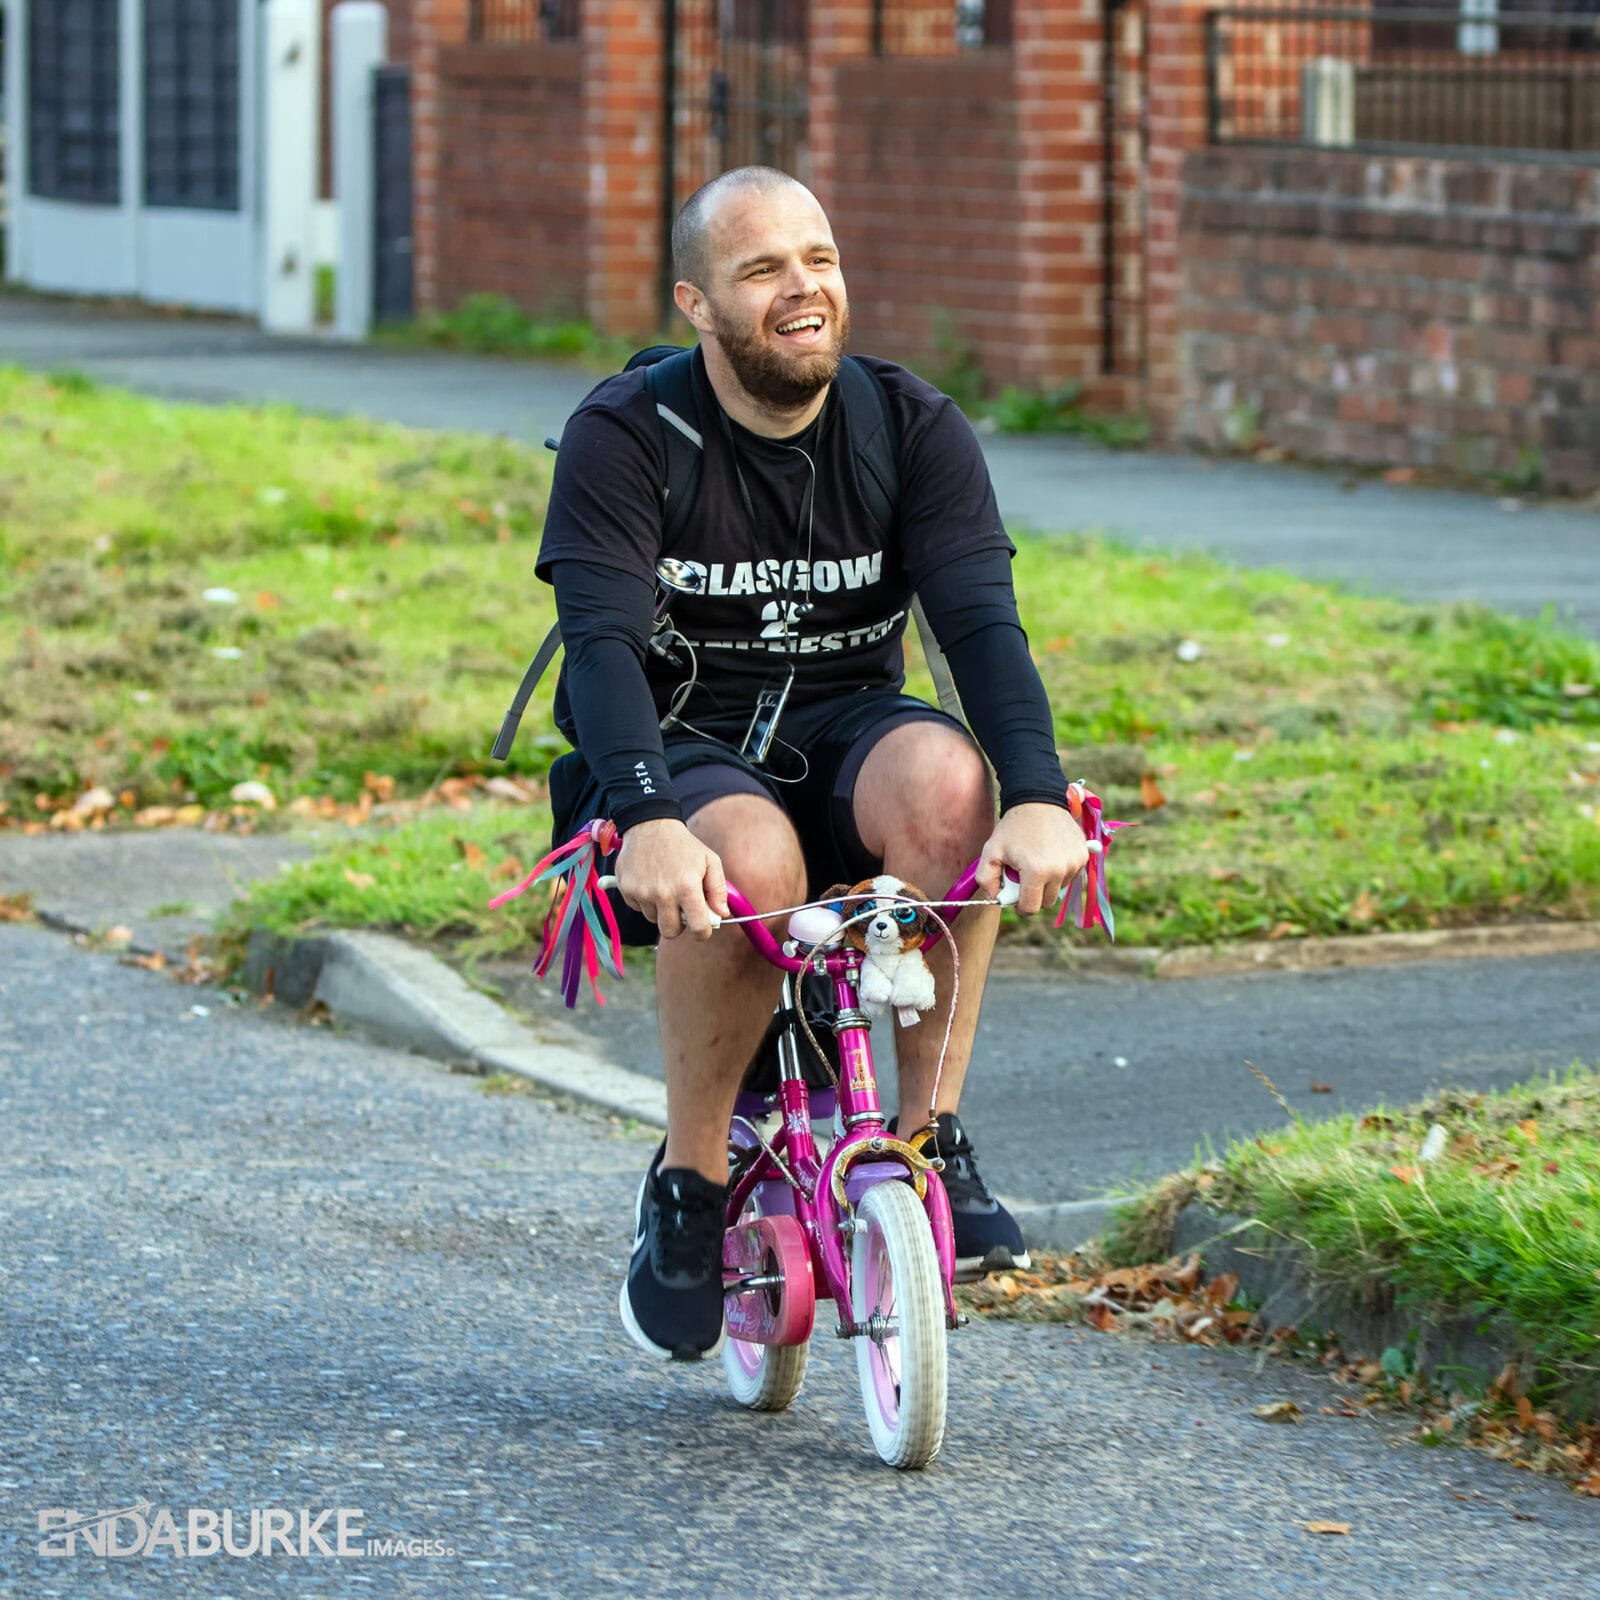 This is what it's like to cycle from Glasgow to Manchester on a little pink bike, The Manc